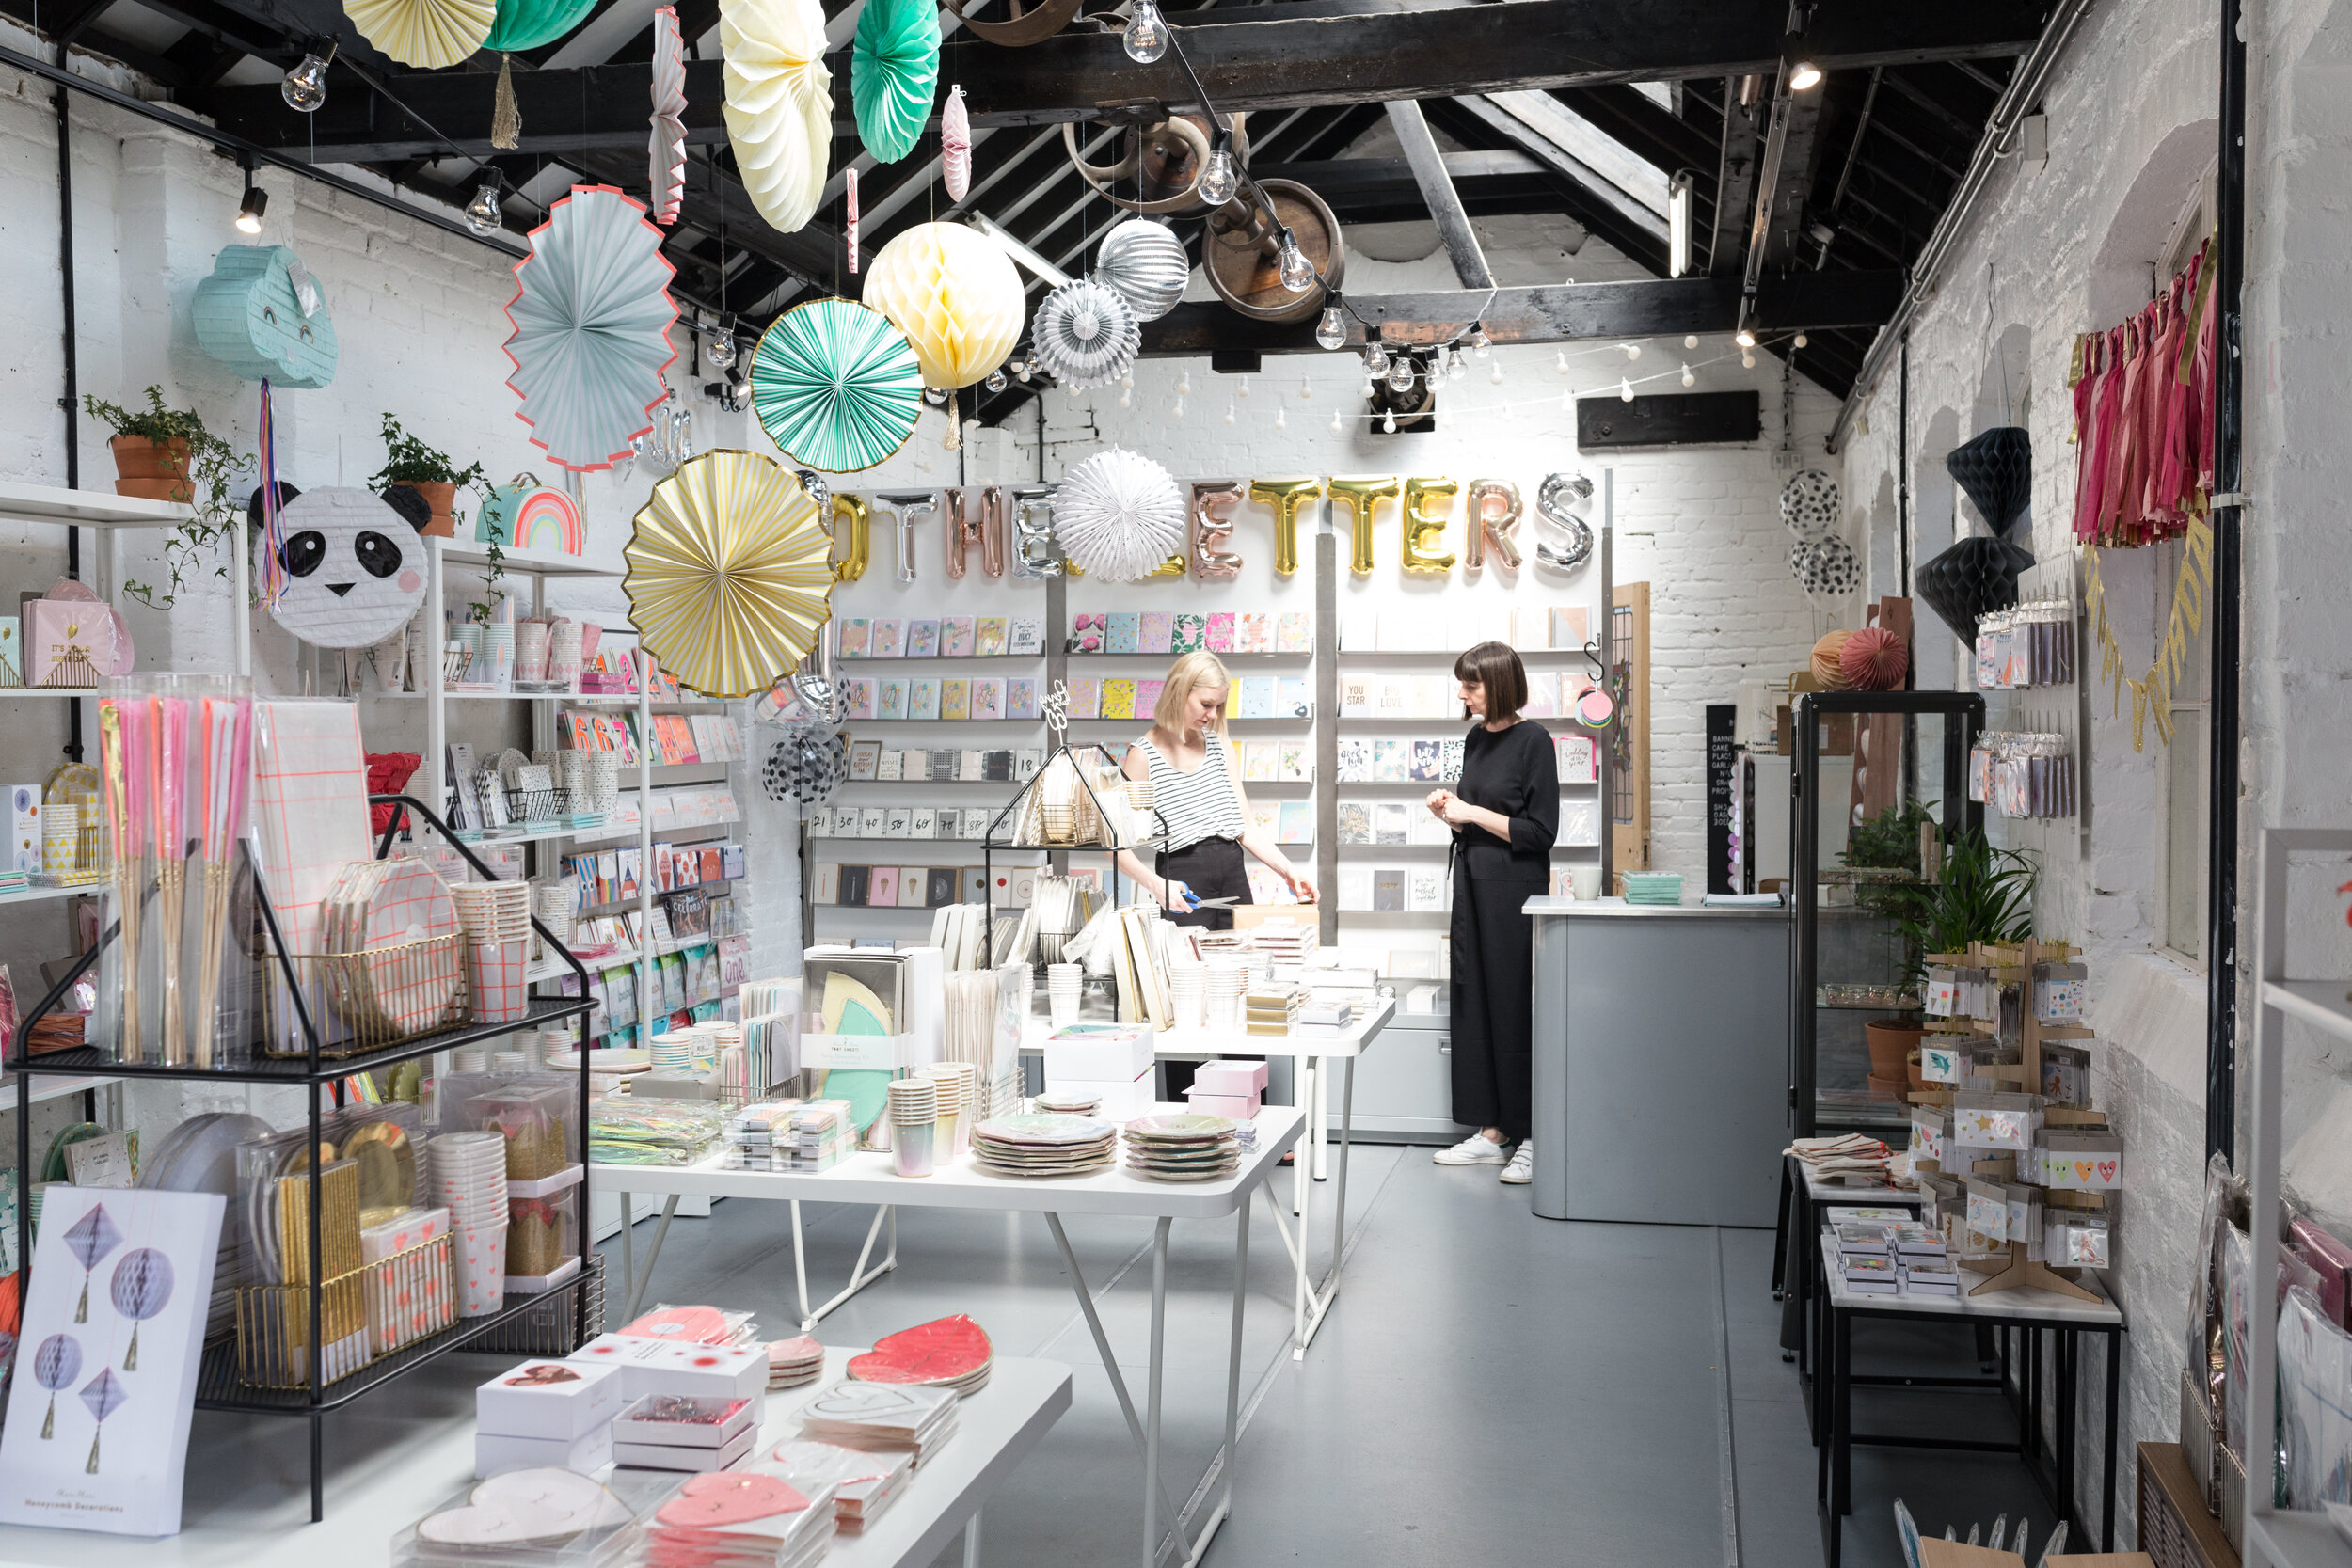 OTHERLETTERS Party Shop in Leigh-on-Sea